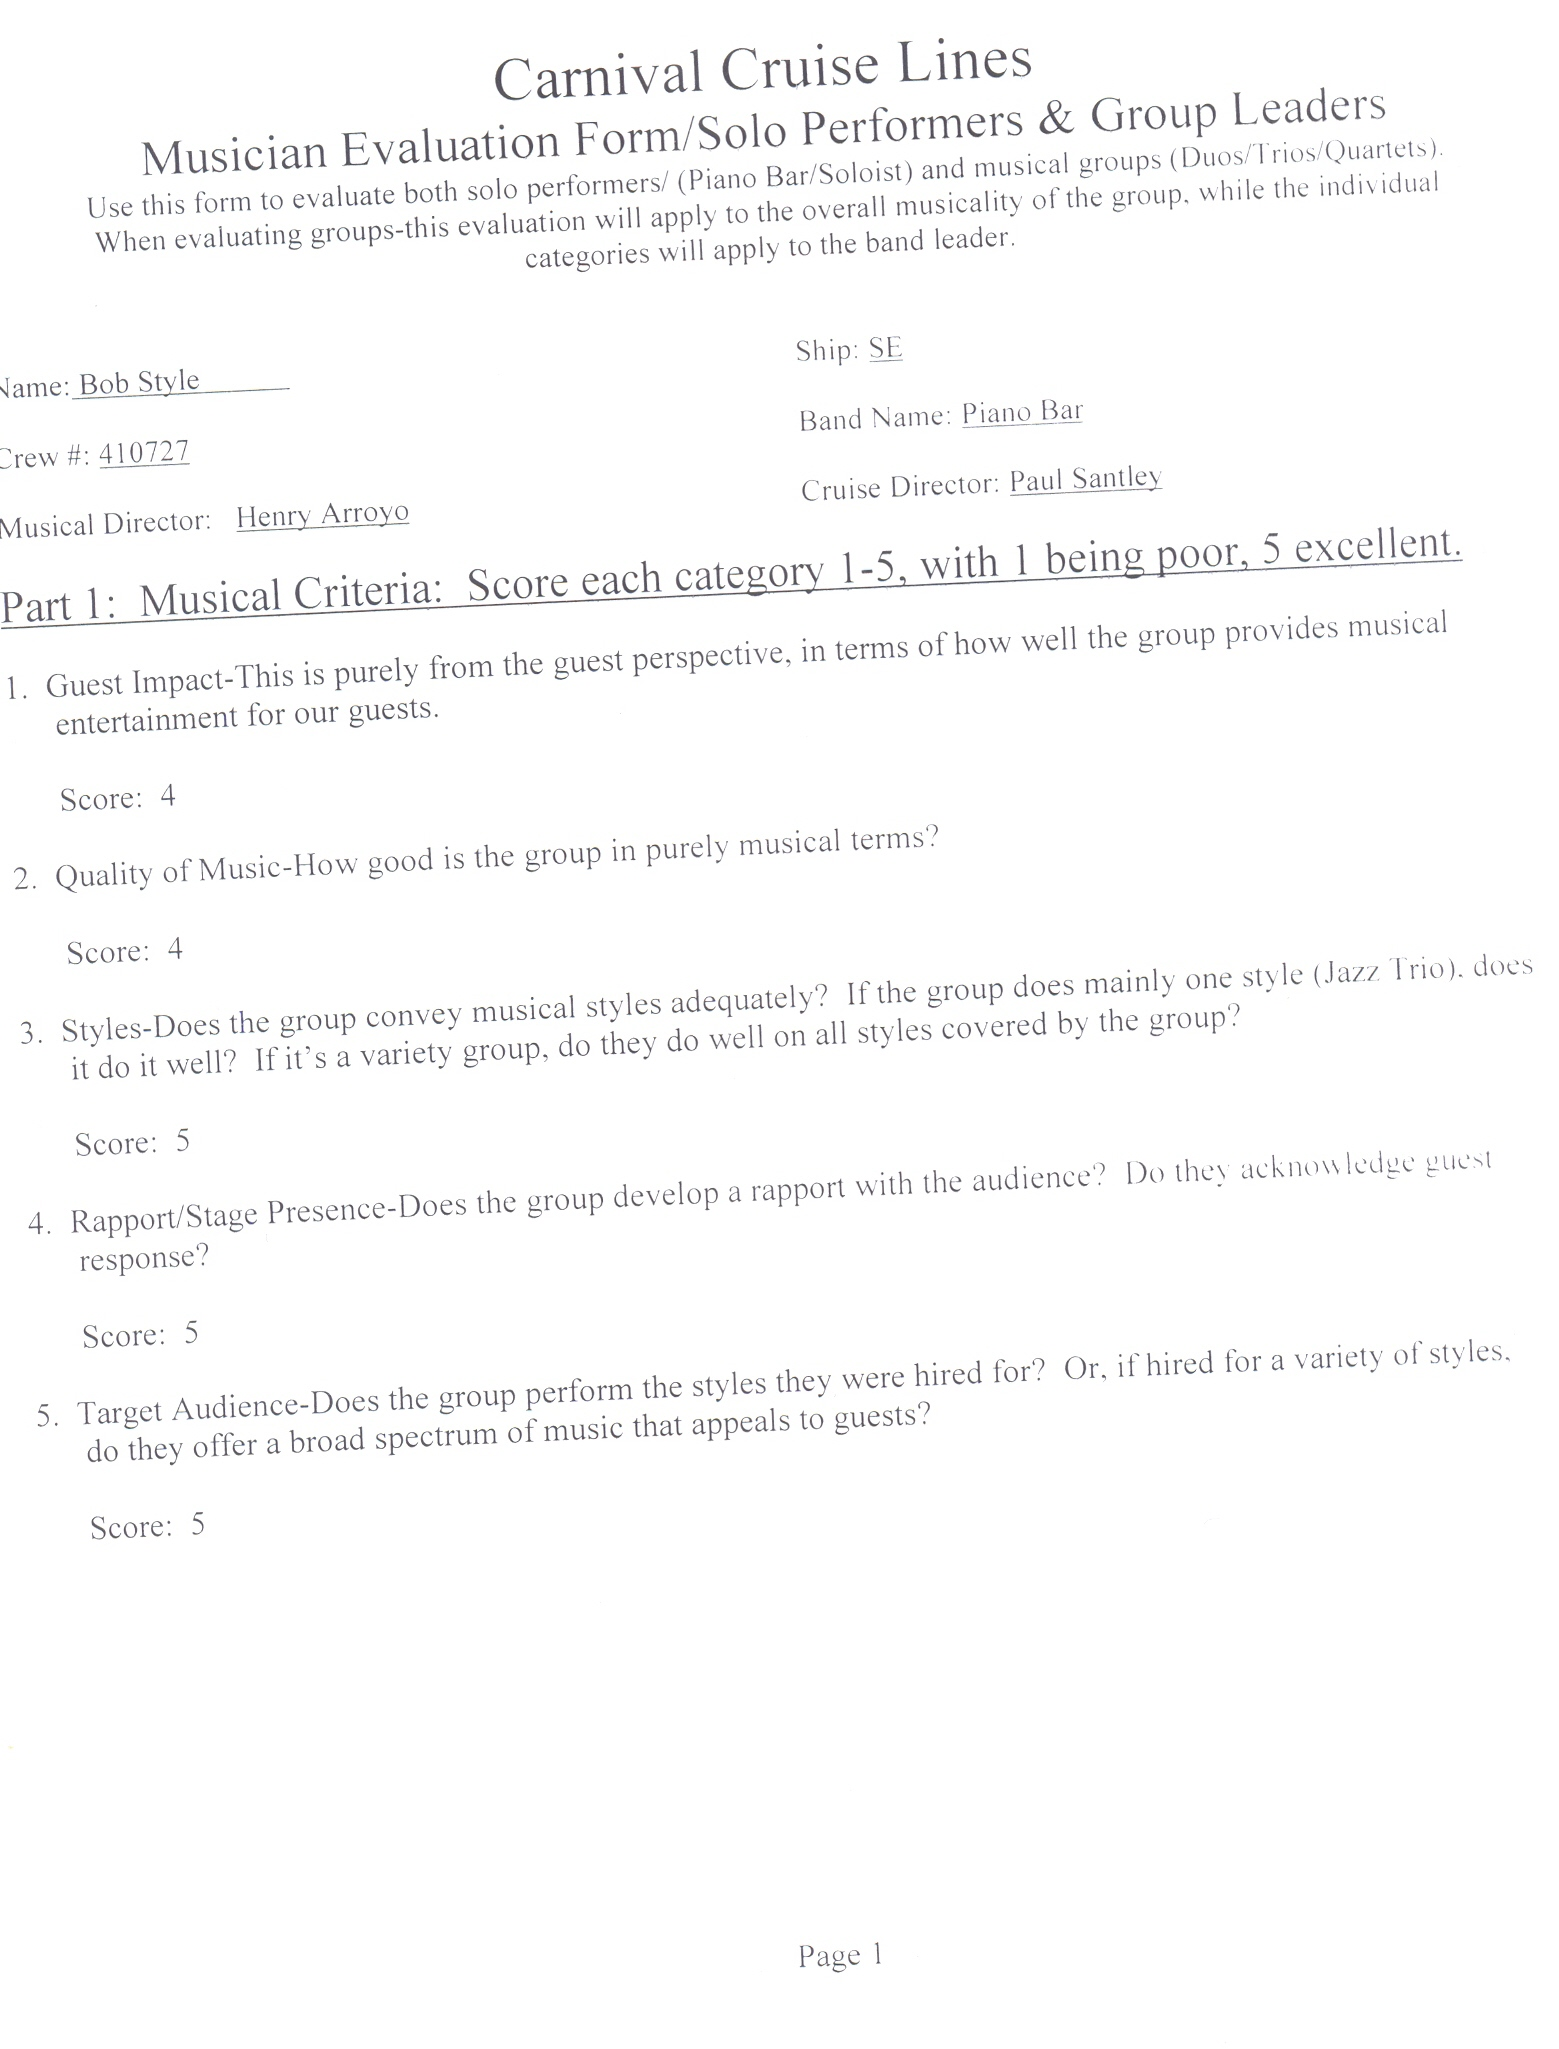 carnival cruise line employment application form